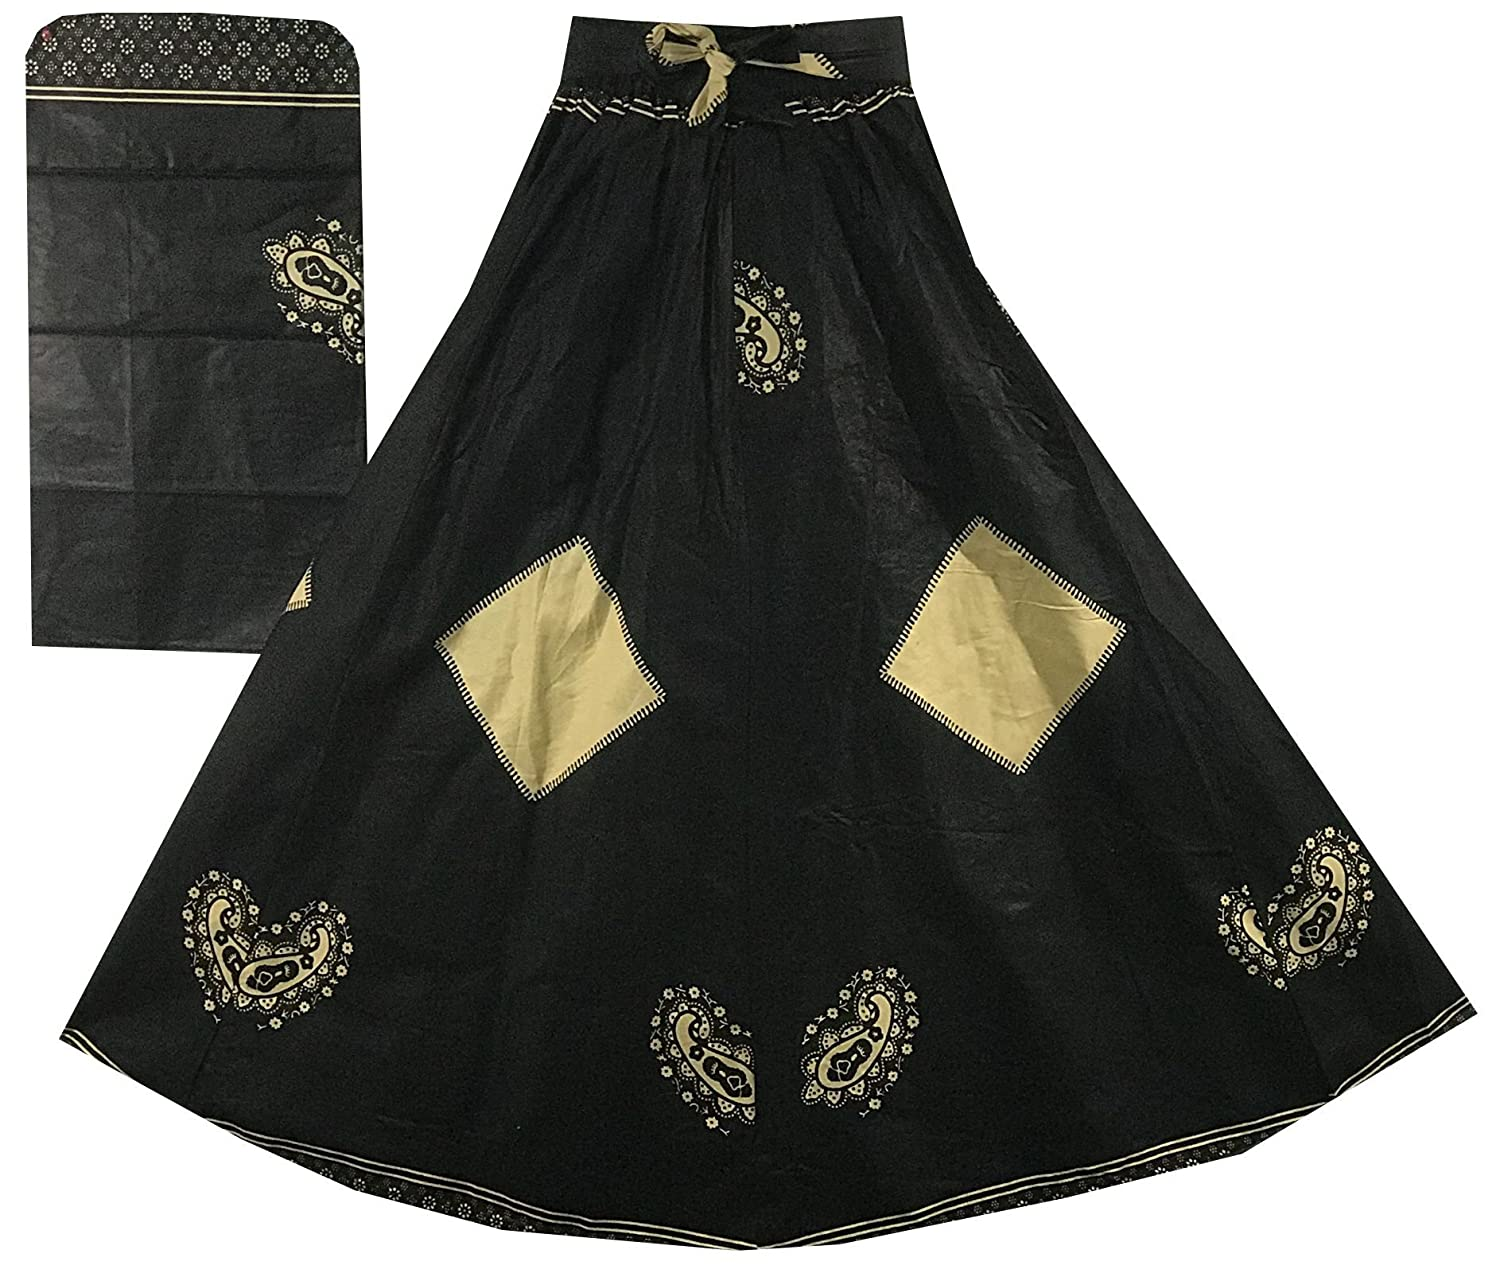 7d83d7299 100% Cotton 100% Cotton. Imported One Size. High elasticated waist band  with sewn two Belt used to adjust the Size Unstretched Waist Size: 32  inches ...